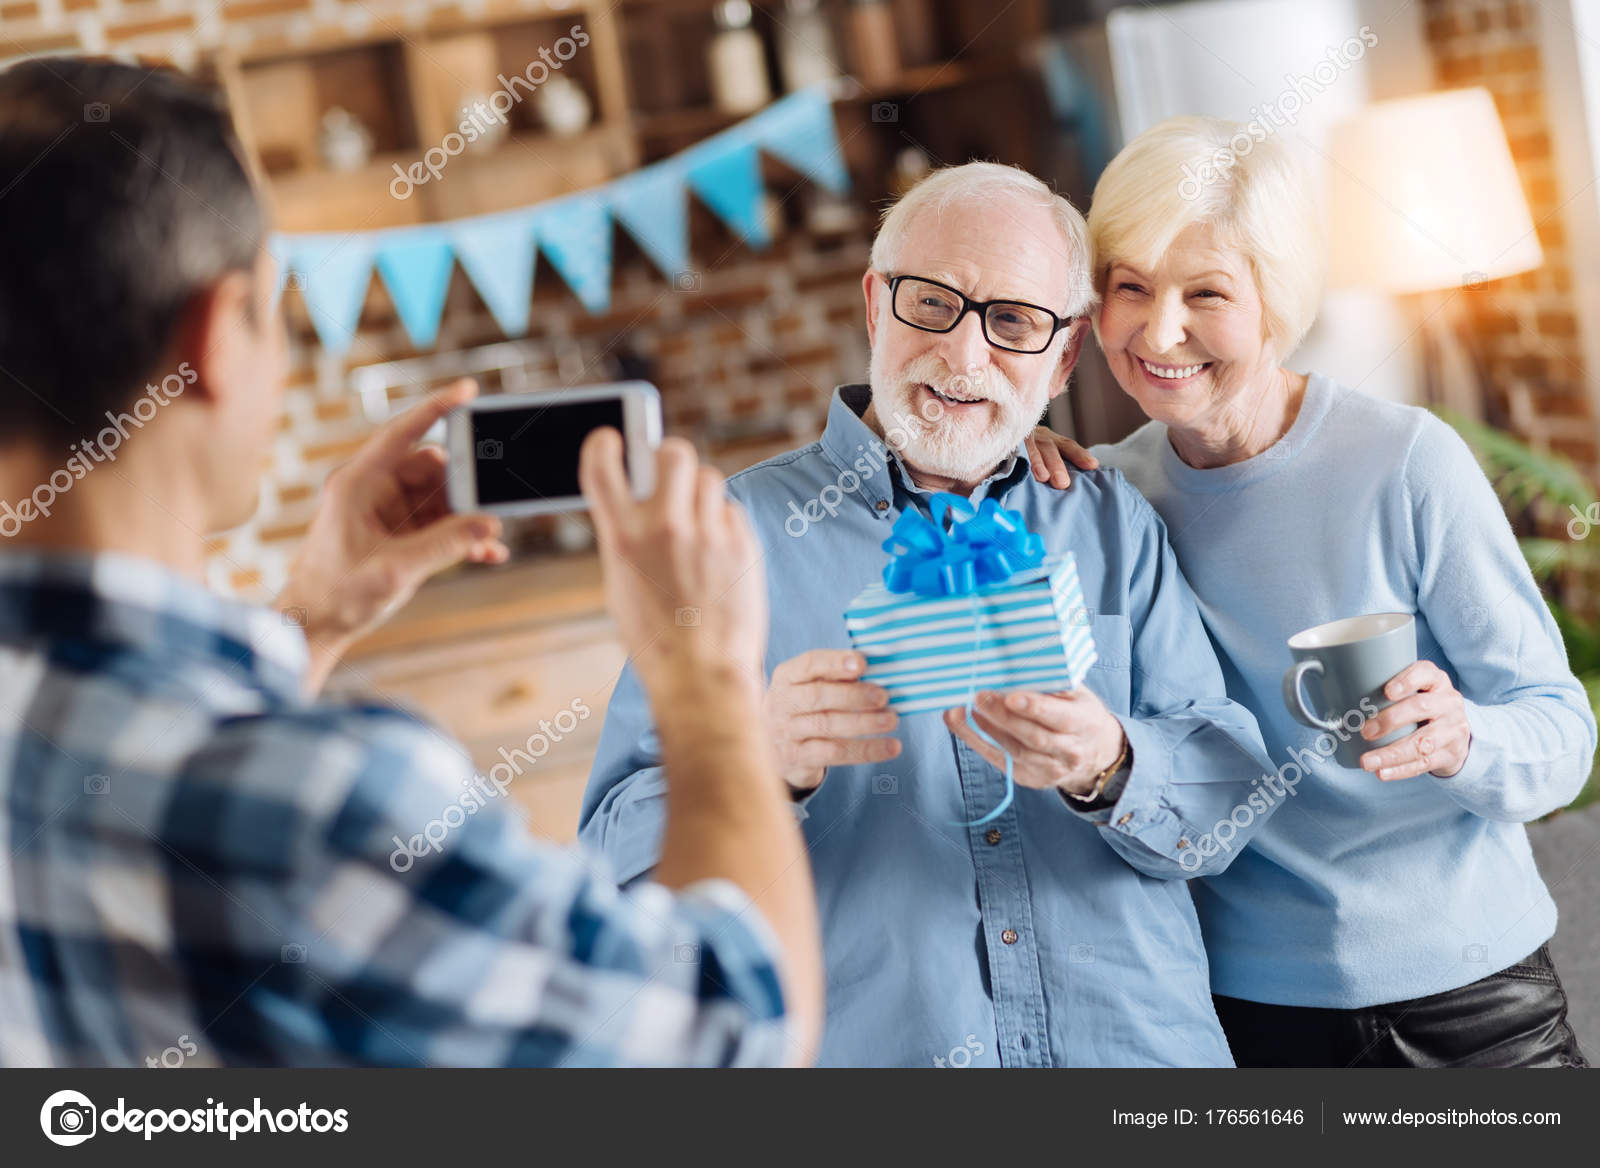 Loving Young Son Taking A Picture Of His Elderly Parents Posing With Birthday Present During The Party Photo By